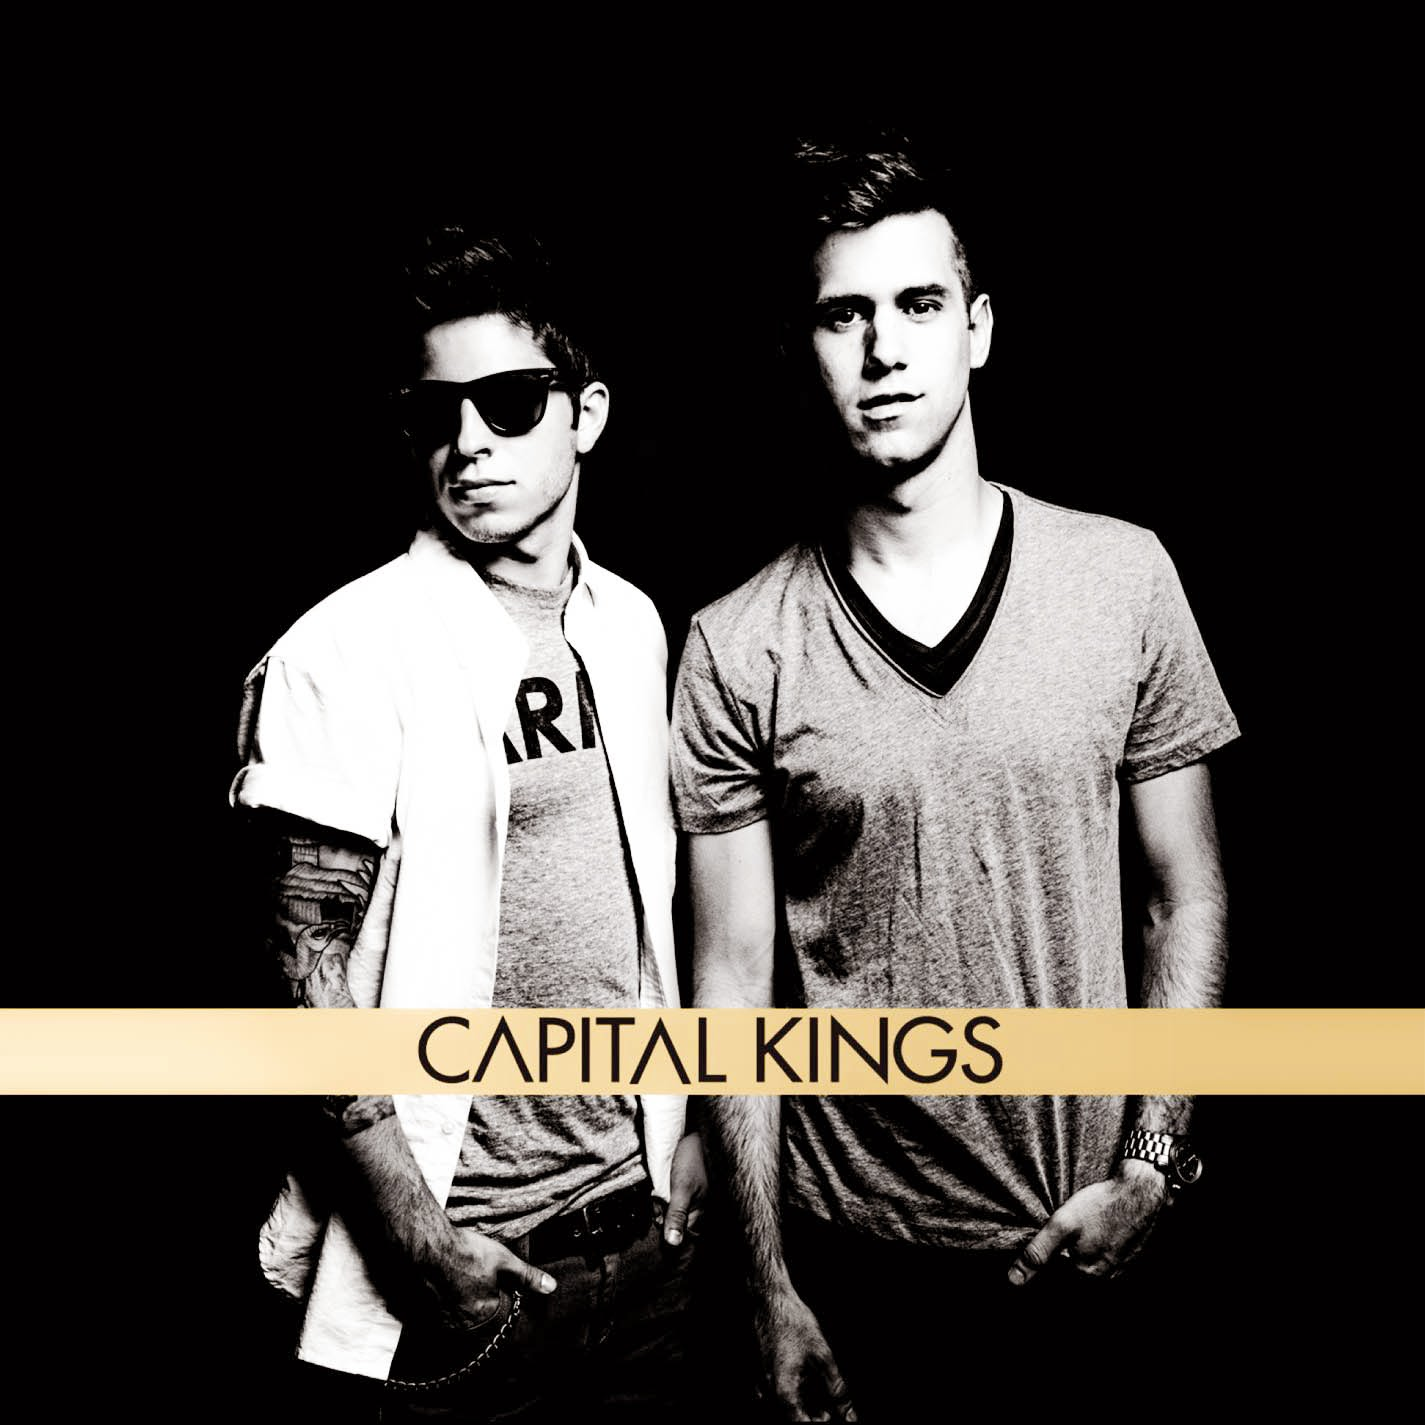 Capital Kings - REMIXD 2014 Biography and history